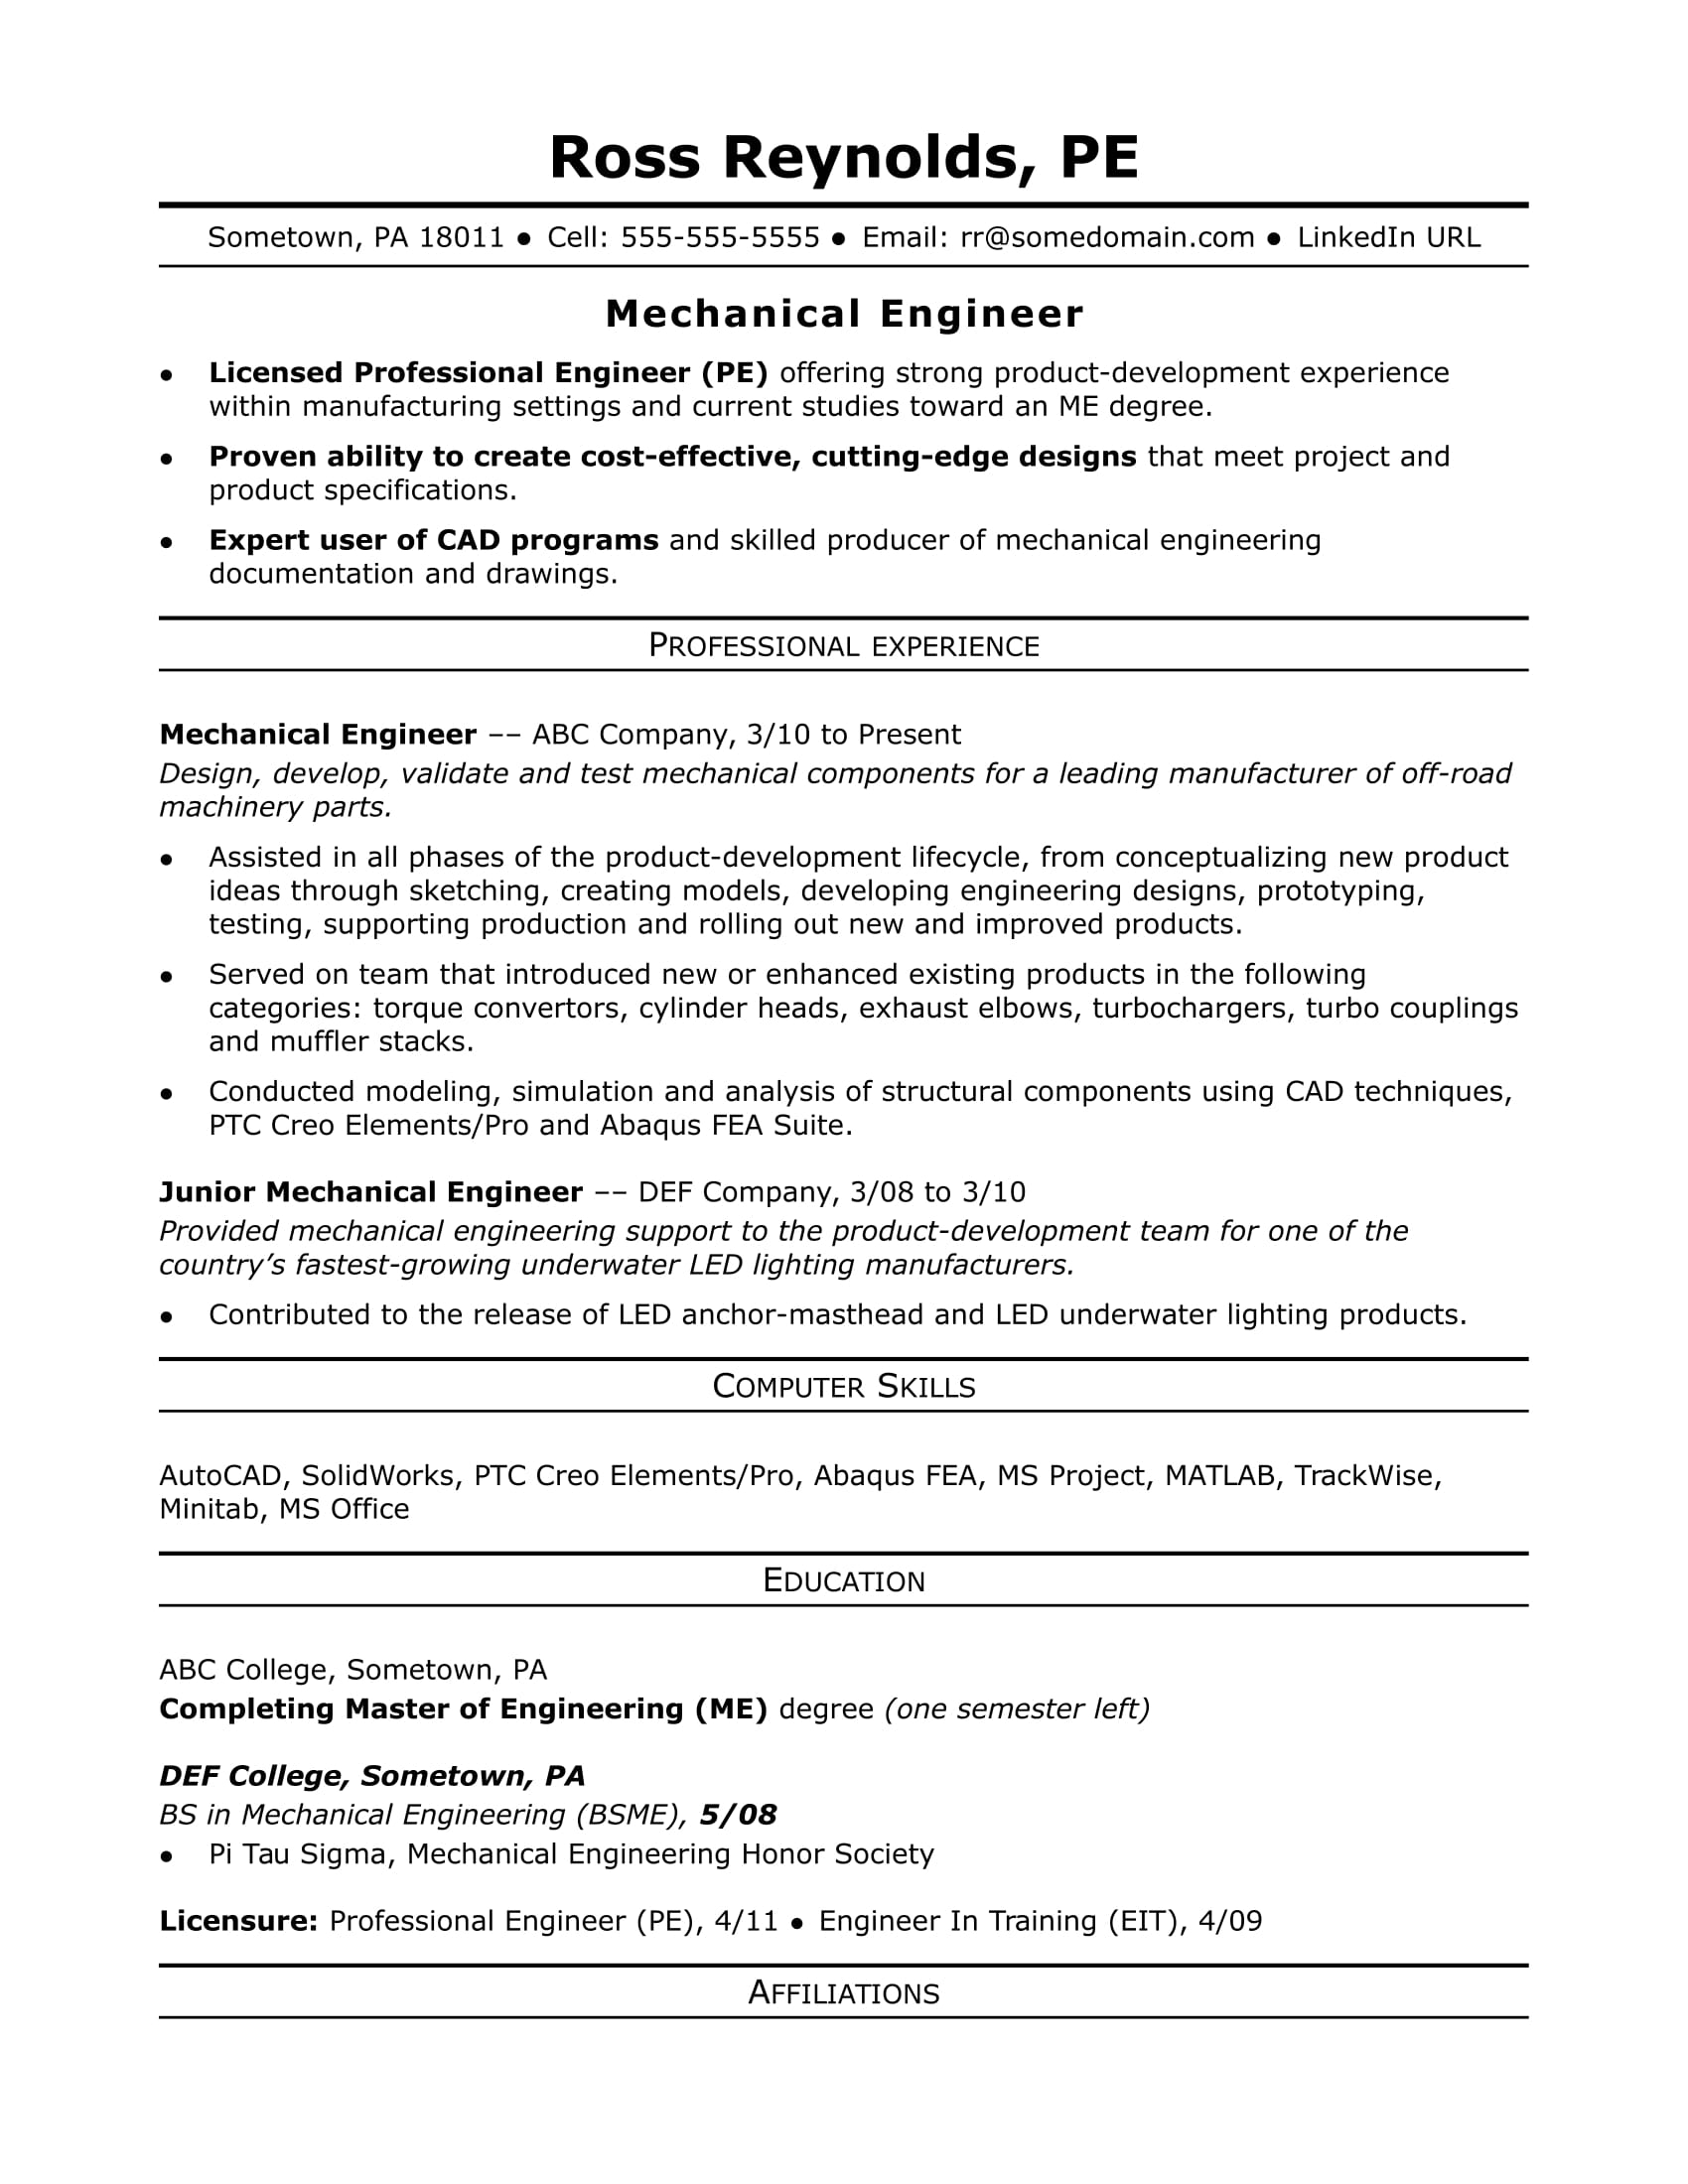 Charming Sample Resume For A Midlevel Mechanical Engineer With Resume For Engineering